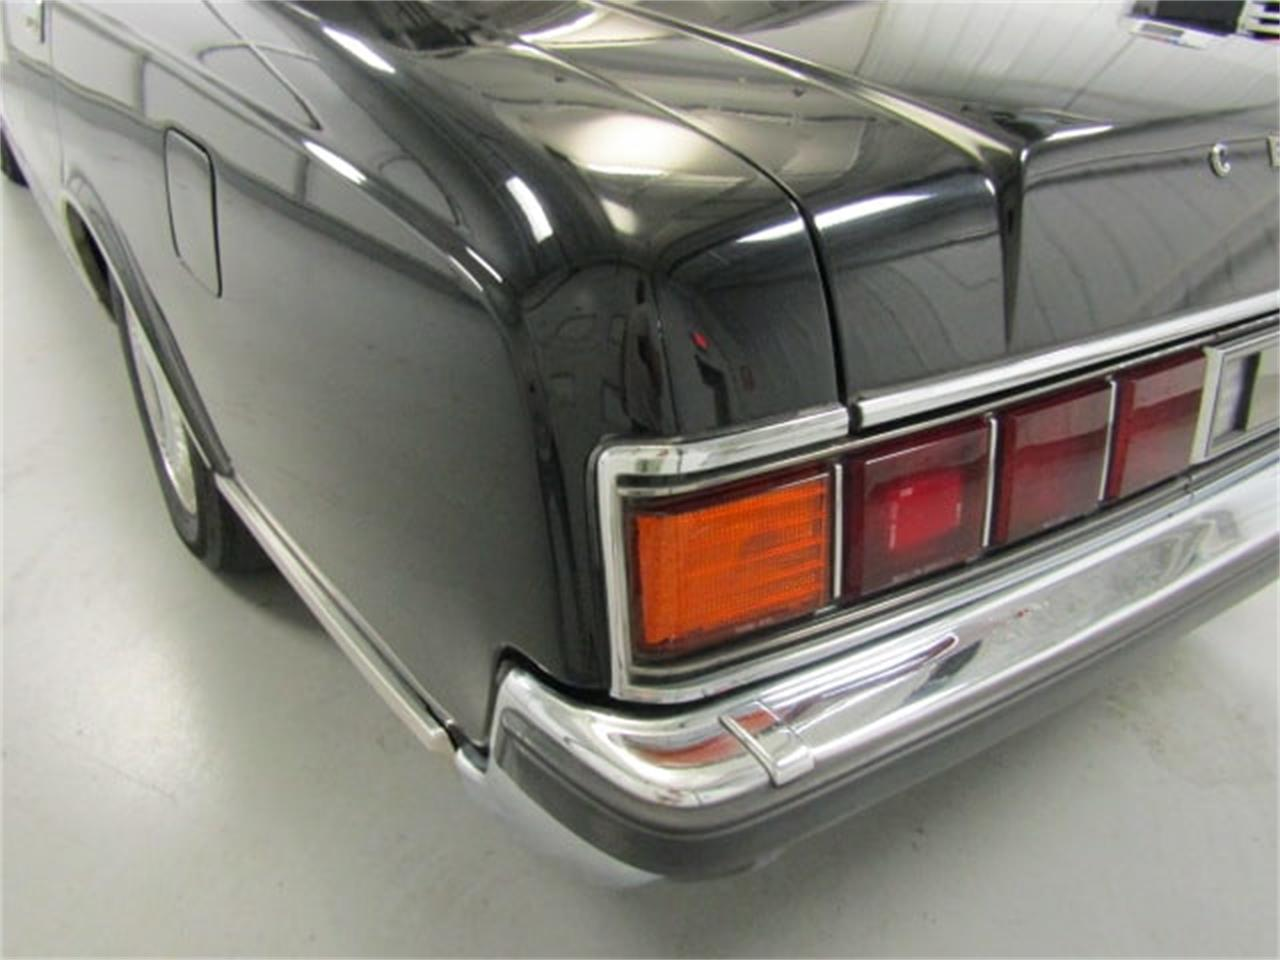 Large Picture of 1989 Toyota Century - $8,989.00 Offered by Duncan Imports & Classic Cars - JM37